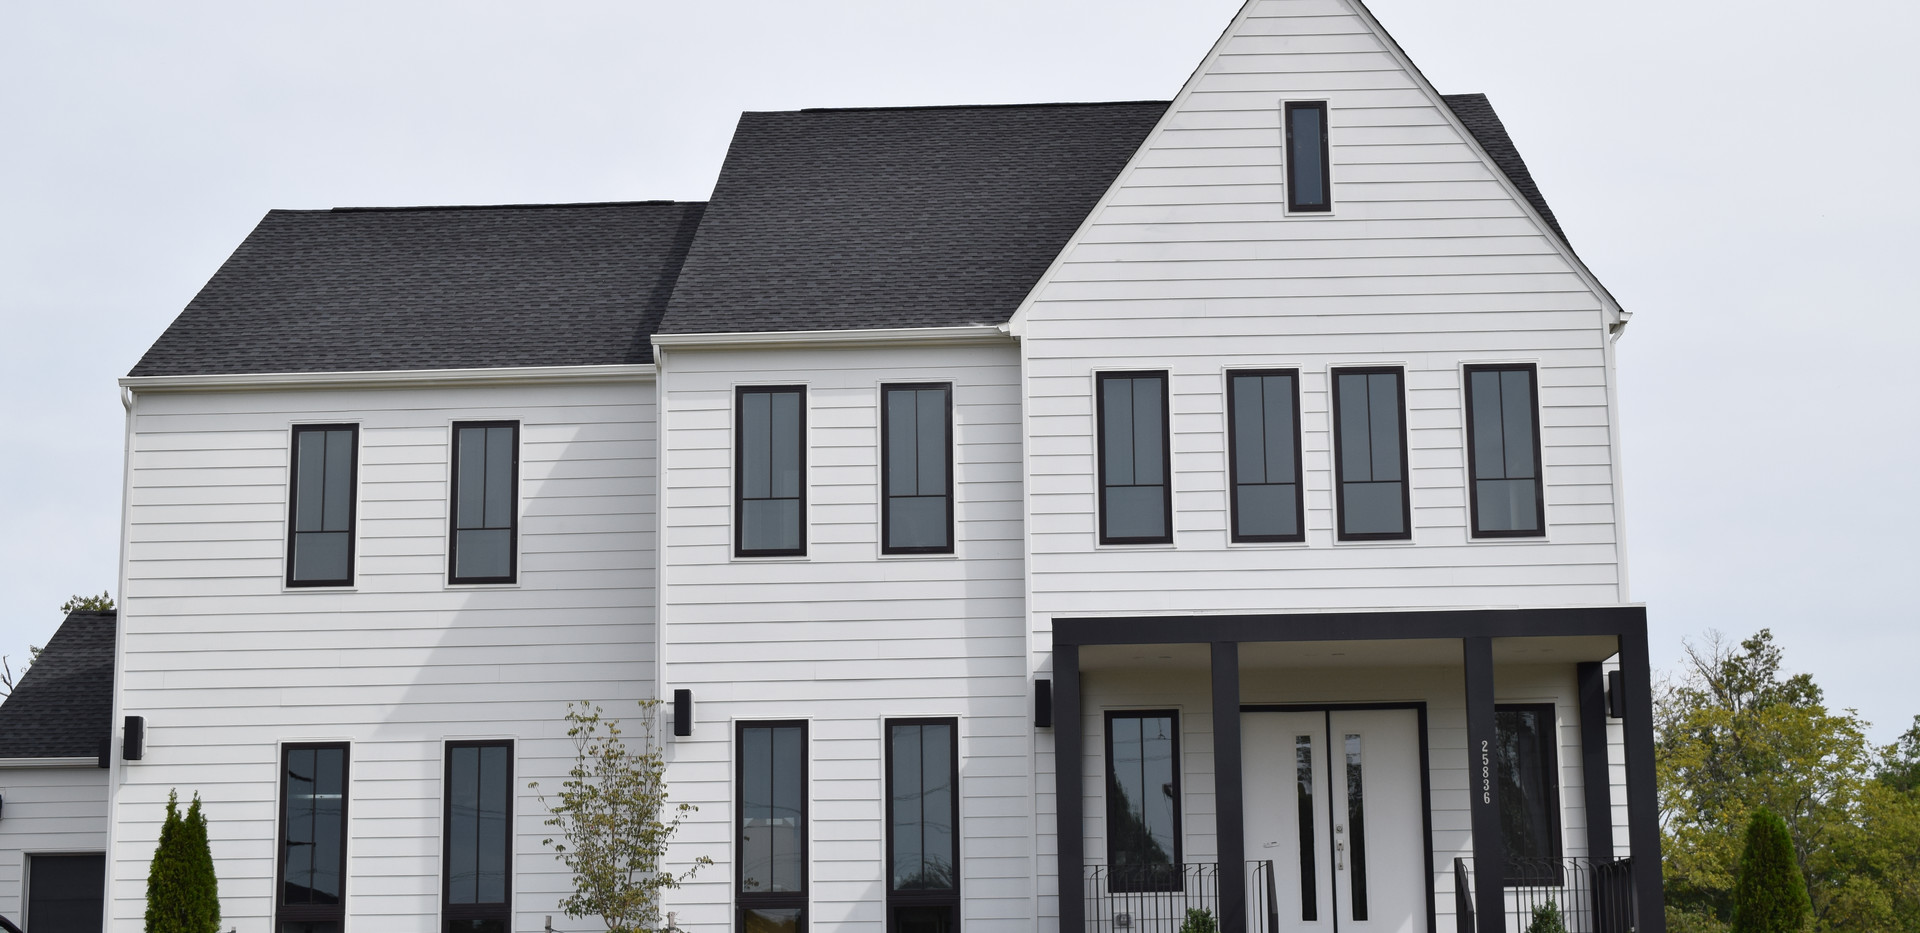 Modern Home with White Siding and Black